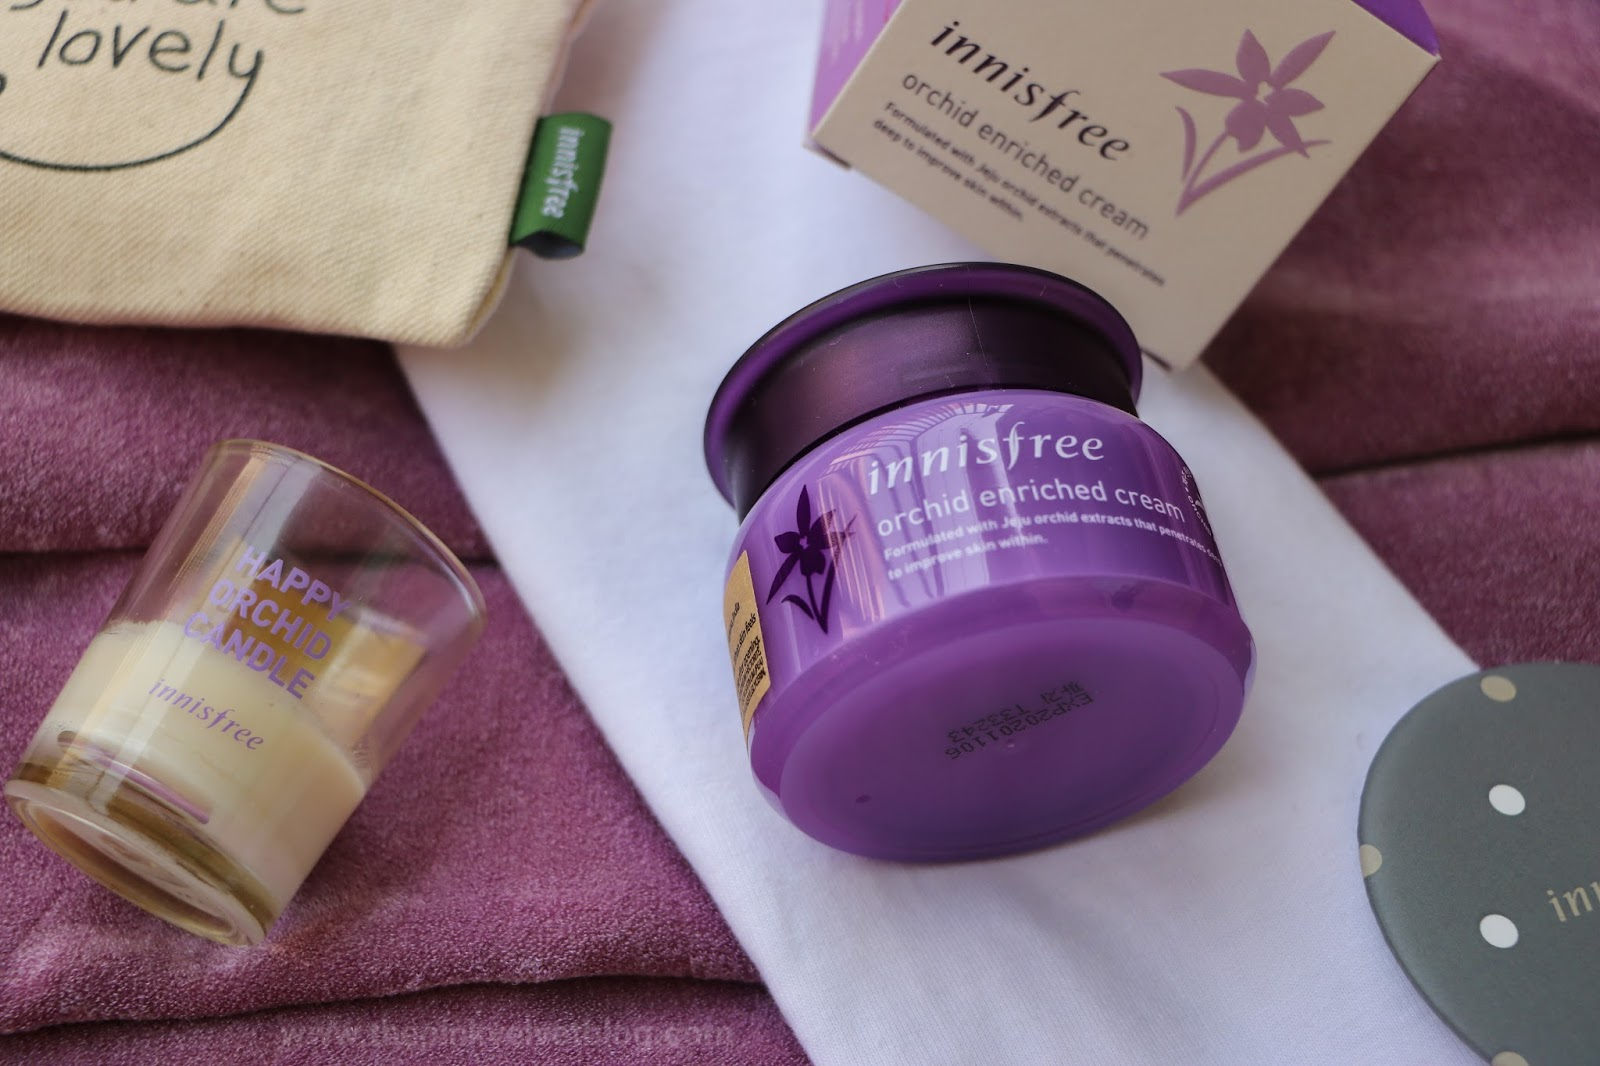 Korean Beauty - Innisfree Orchid Enriched Cream